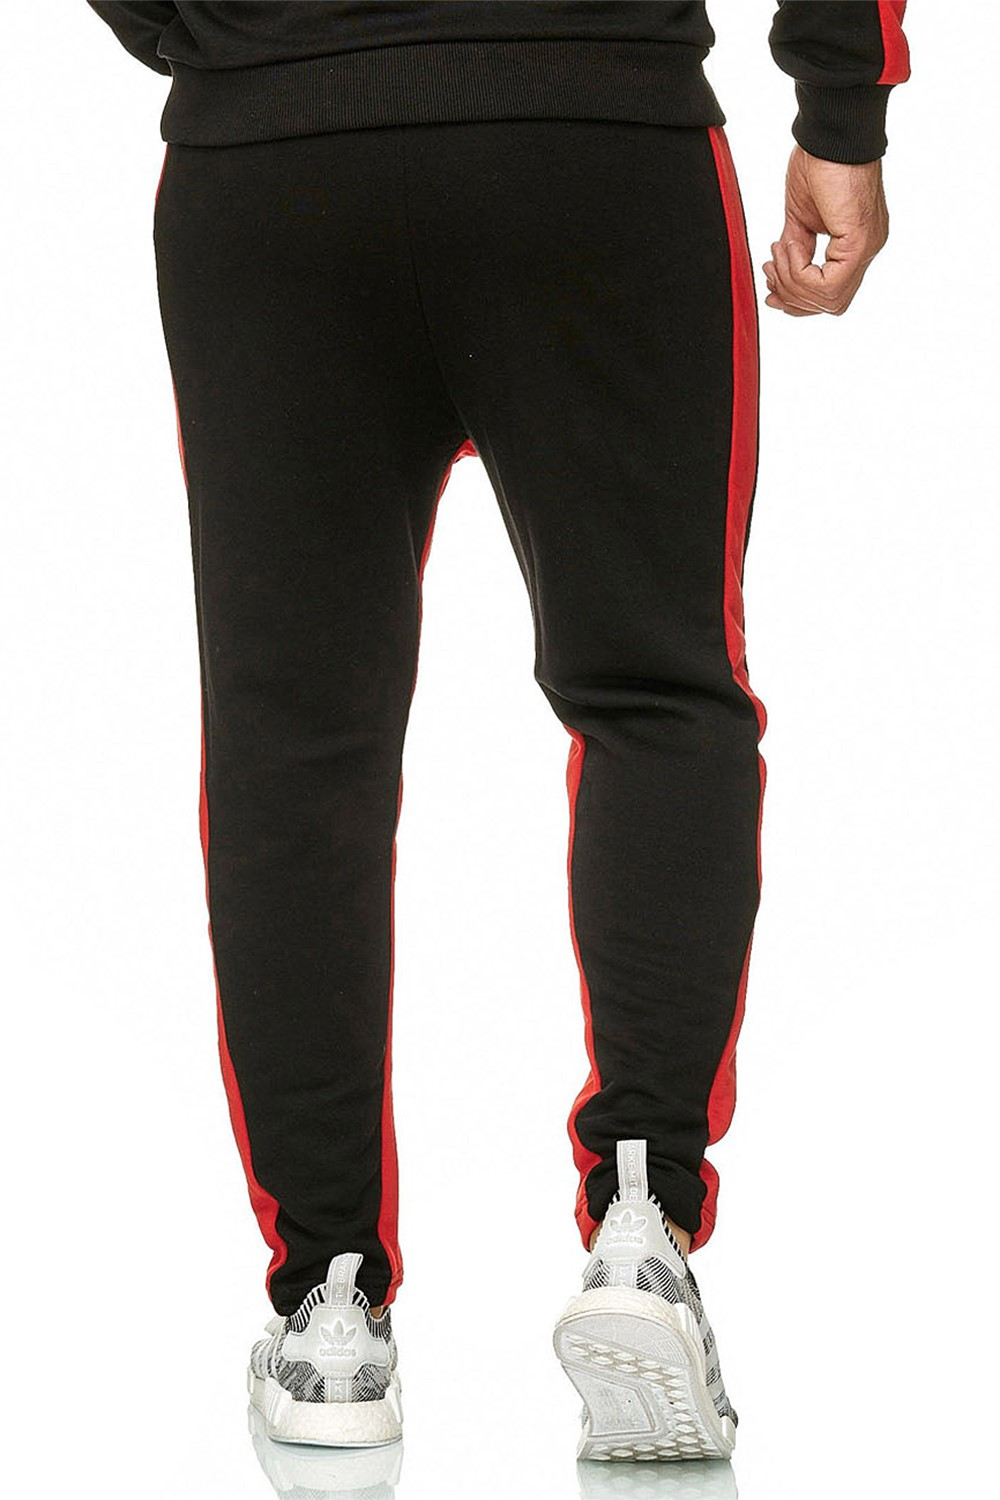 Redbridge-senores-regular-fit-chandal-fitness-sueter-aerobic-pantalones miniatura 12